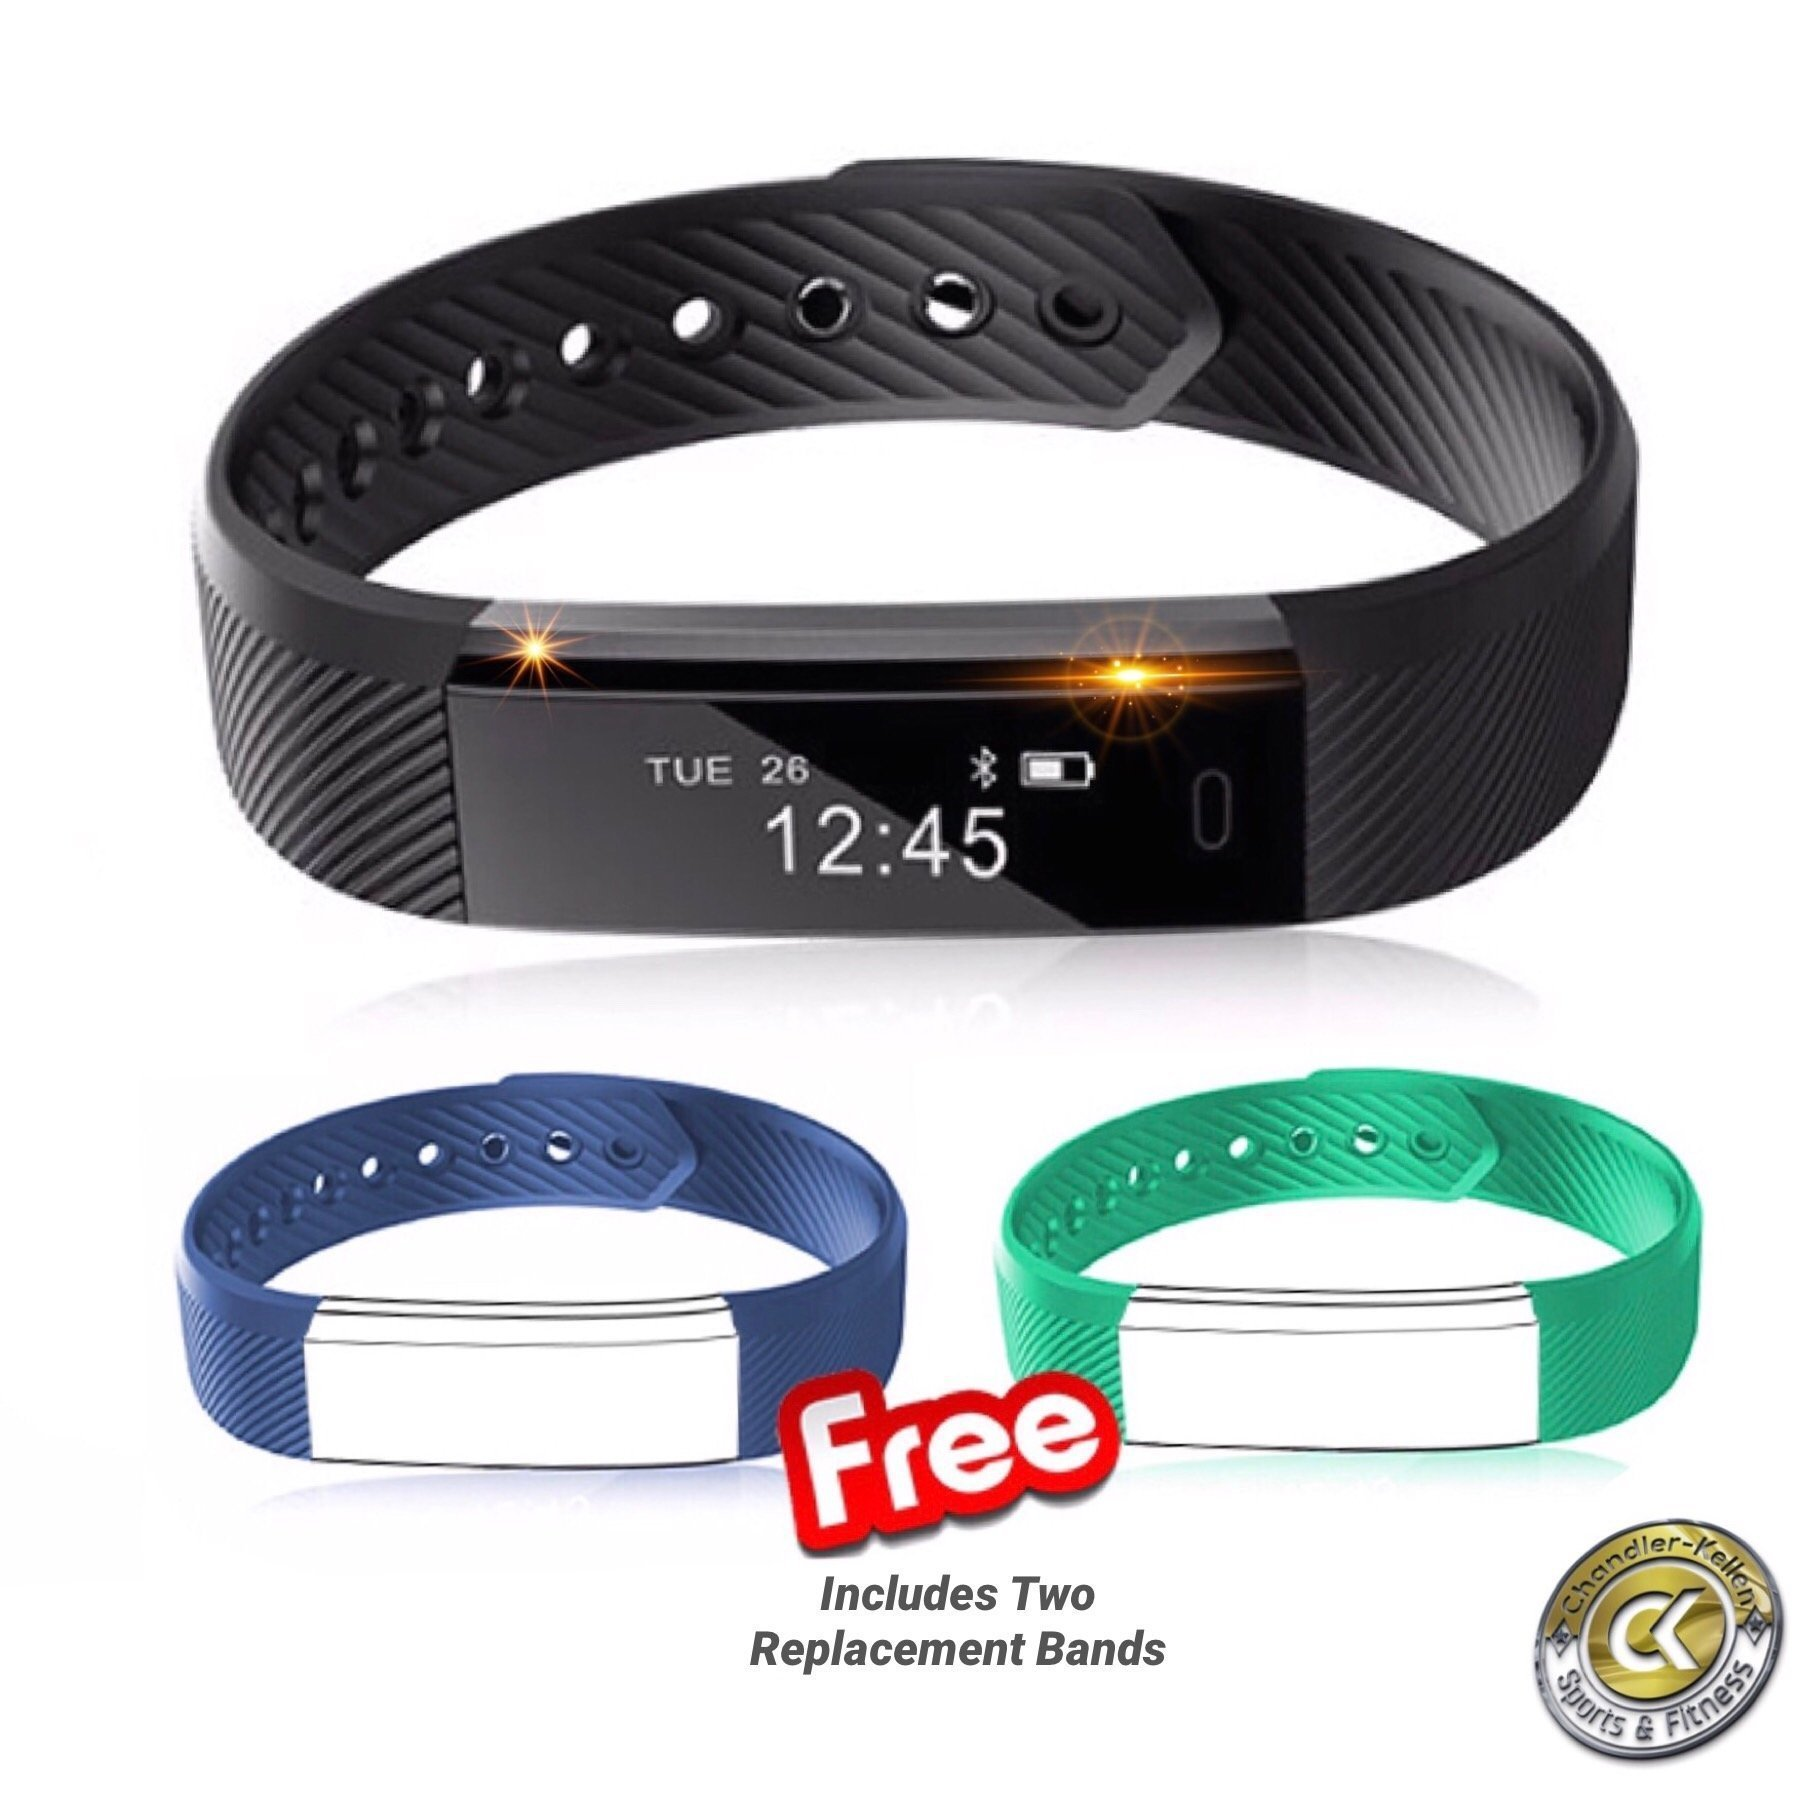 Smart Bracelet By Chandler-Kellen Sports VeryFit, Fitness Tracker Wristband w/ Pedometer, Calorie Tracker, Sleep Tracker, Alarm Clock & Water Resistant For iPhone and Android + 2 replacement bands